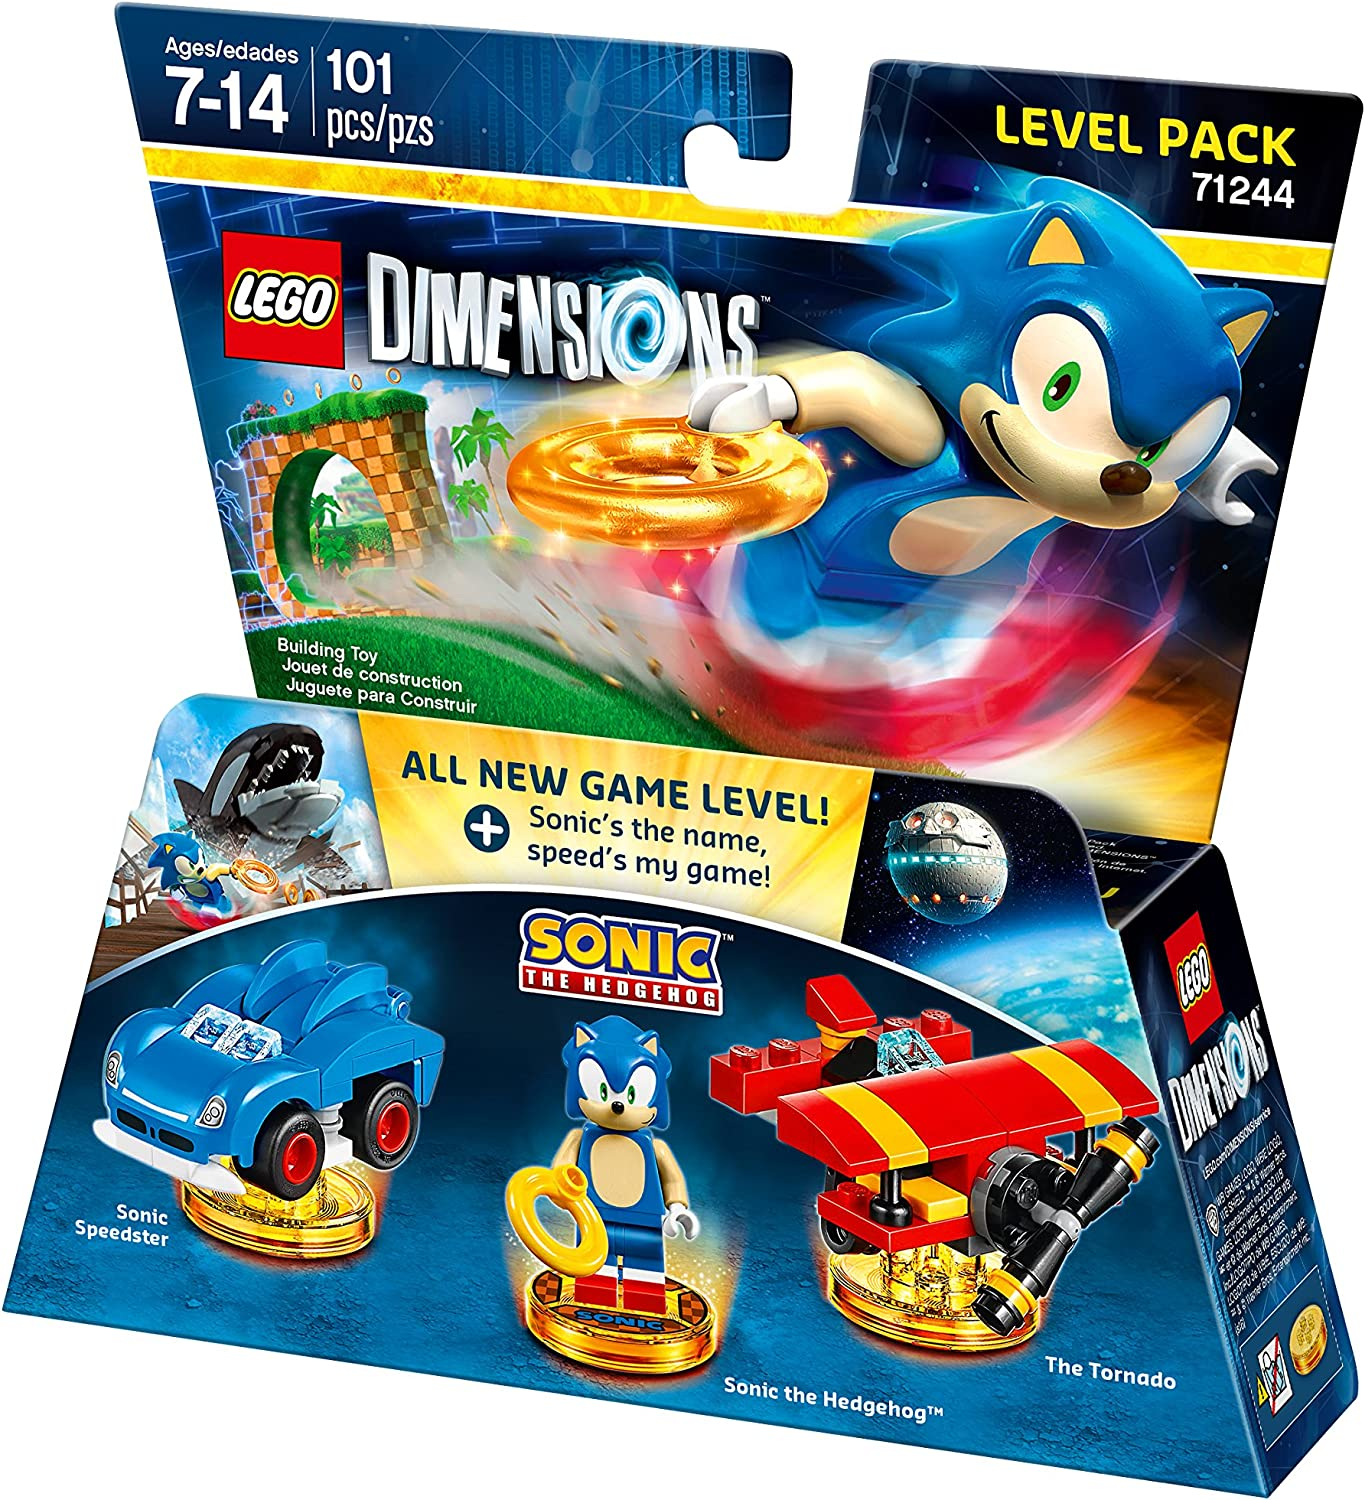 amazon com sonic the hedgehog level pack lego dimensions not